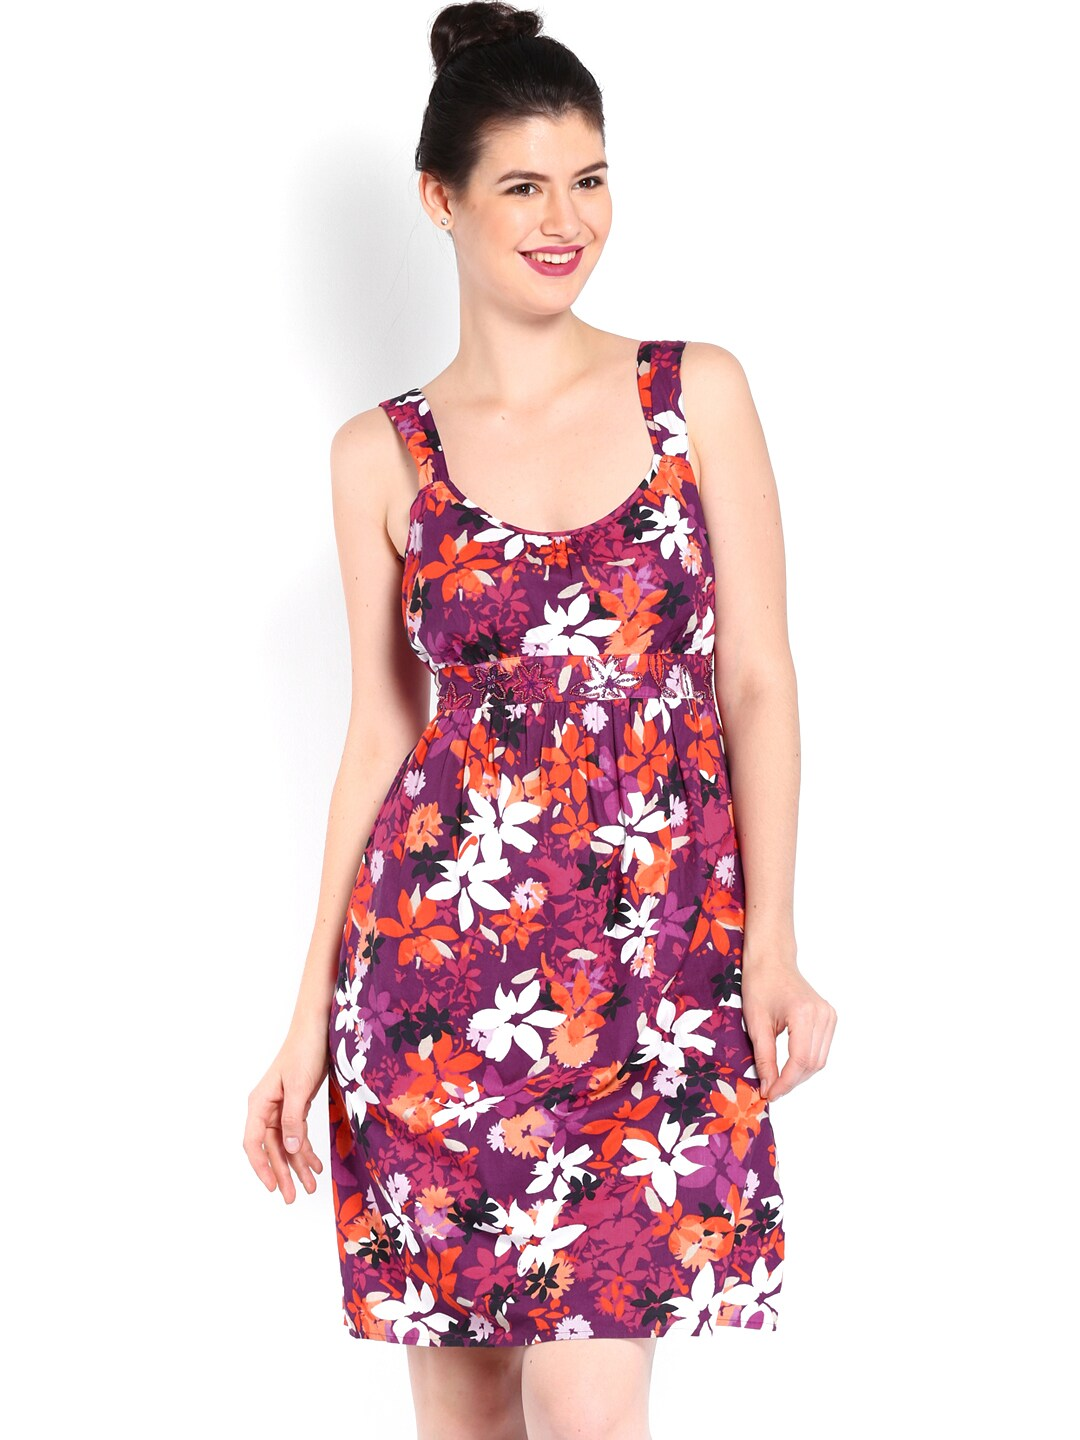 ac991099a77ea ... knee length dress 92bf6 4c47a; italy casual collection db0570106884a by  debenhams purple orange floral print fit flare dress price in india